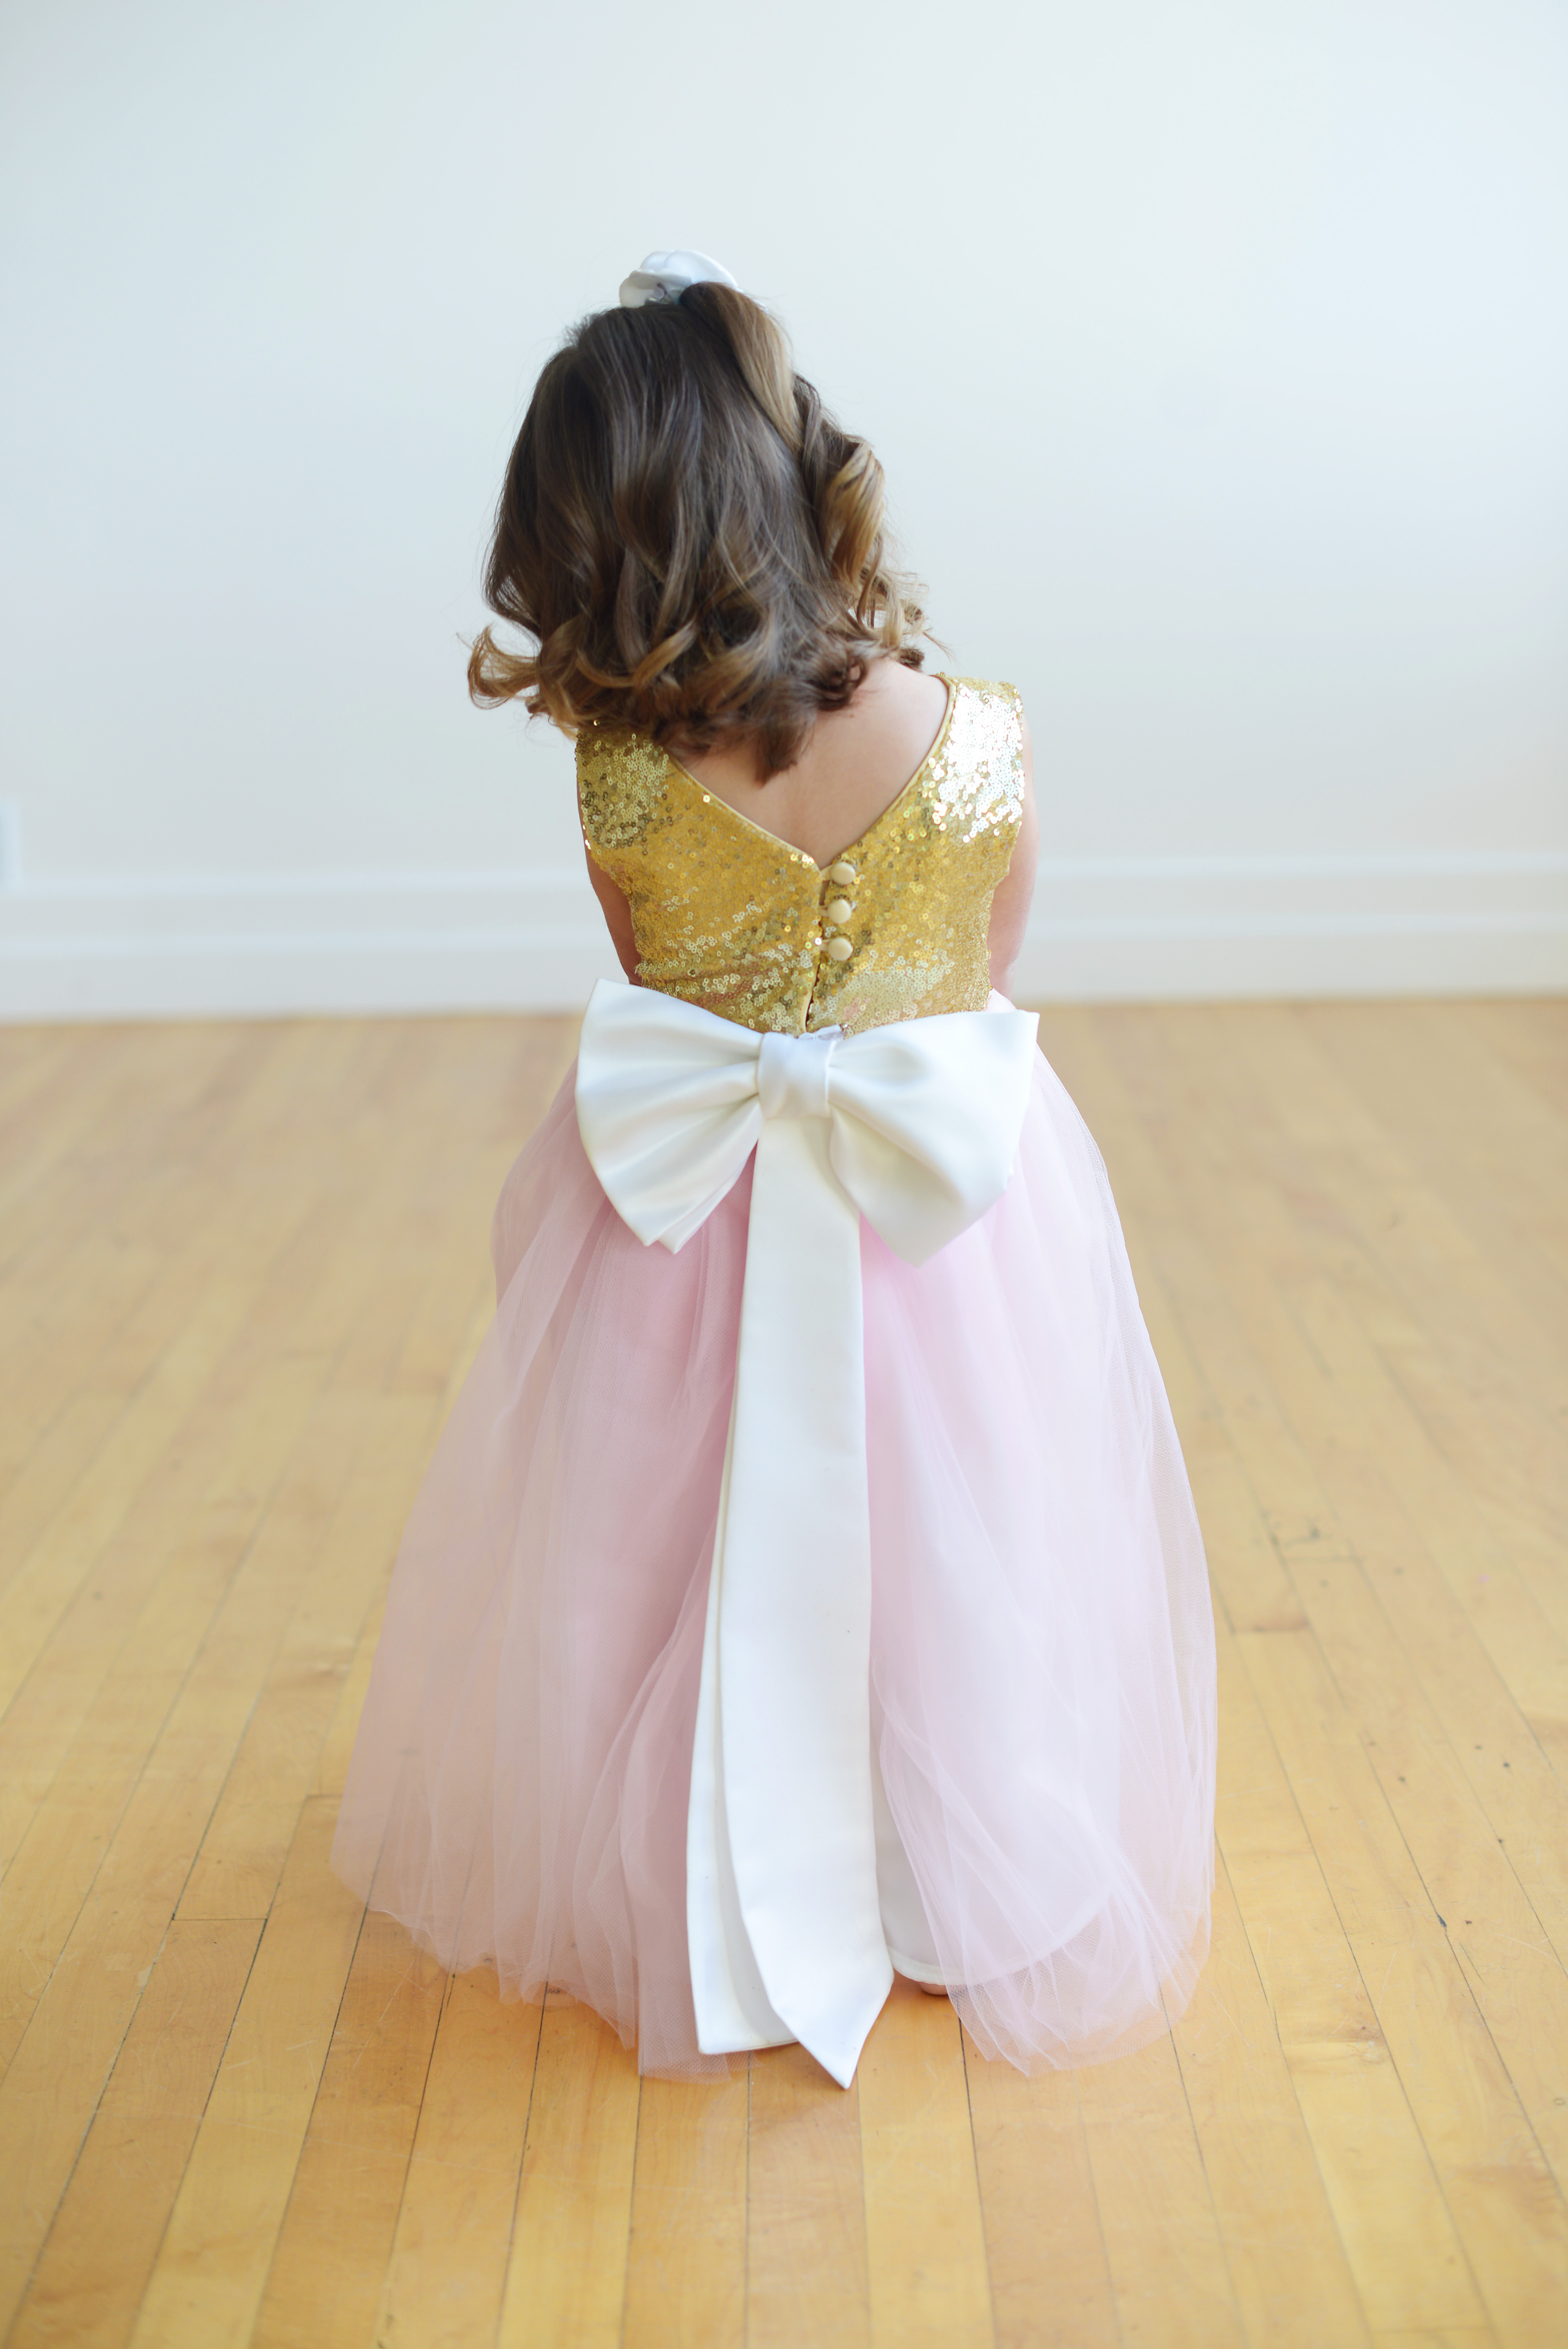 d4e16e0fb2f A flower girl dress with a pink tulle skirt and a gold sequin bodice. The